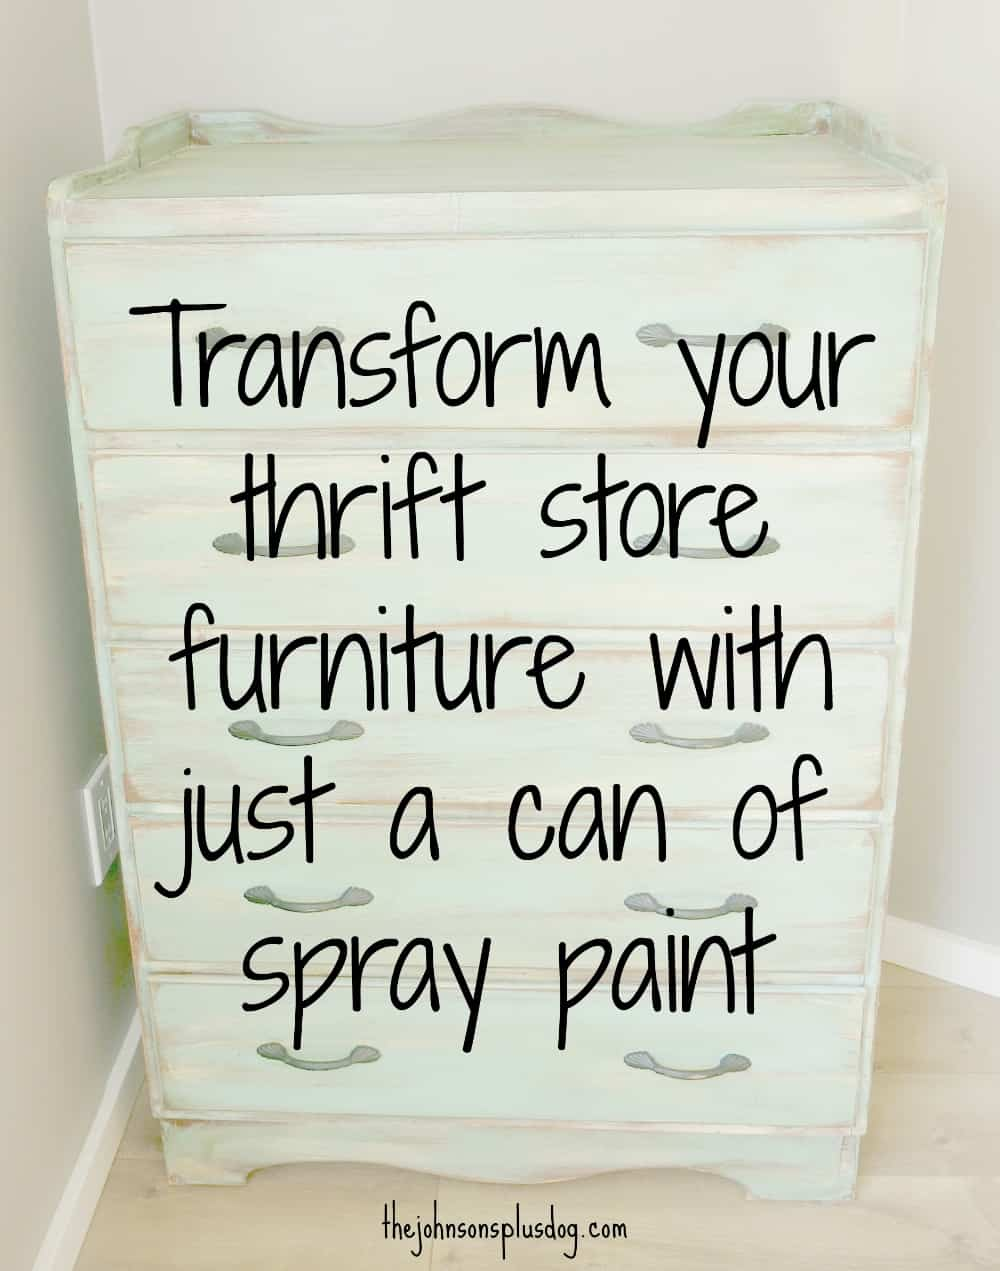 Transform your thrift store furniture with just a can of spray paint!